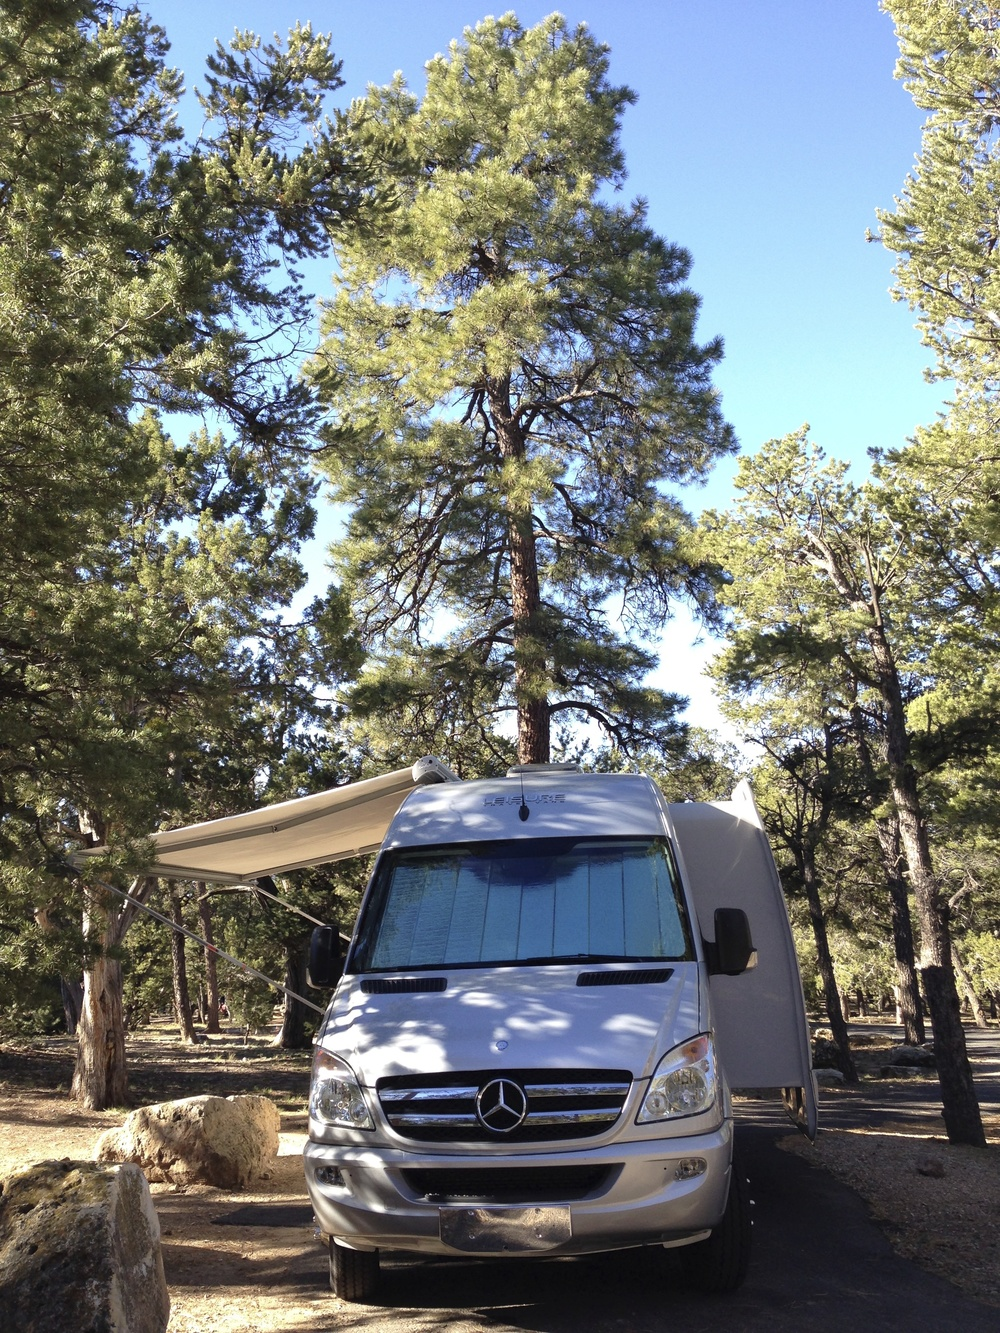 Mather Campground. We'll give you the scoop on the best site - even reserve it for you, if you like.